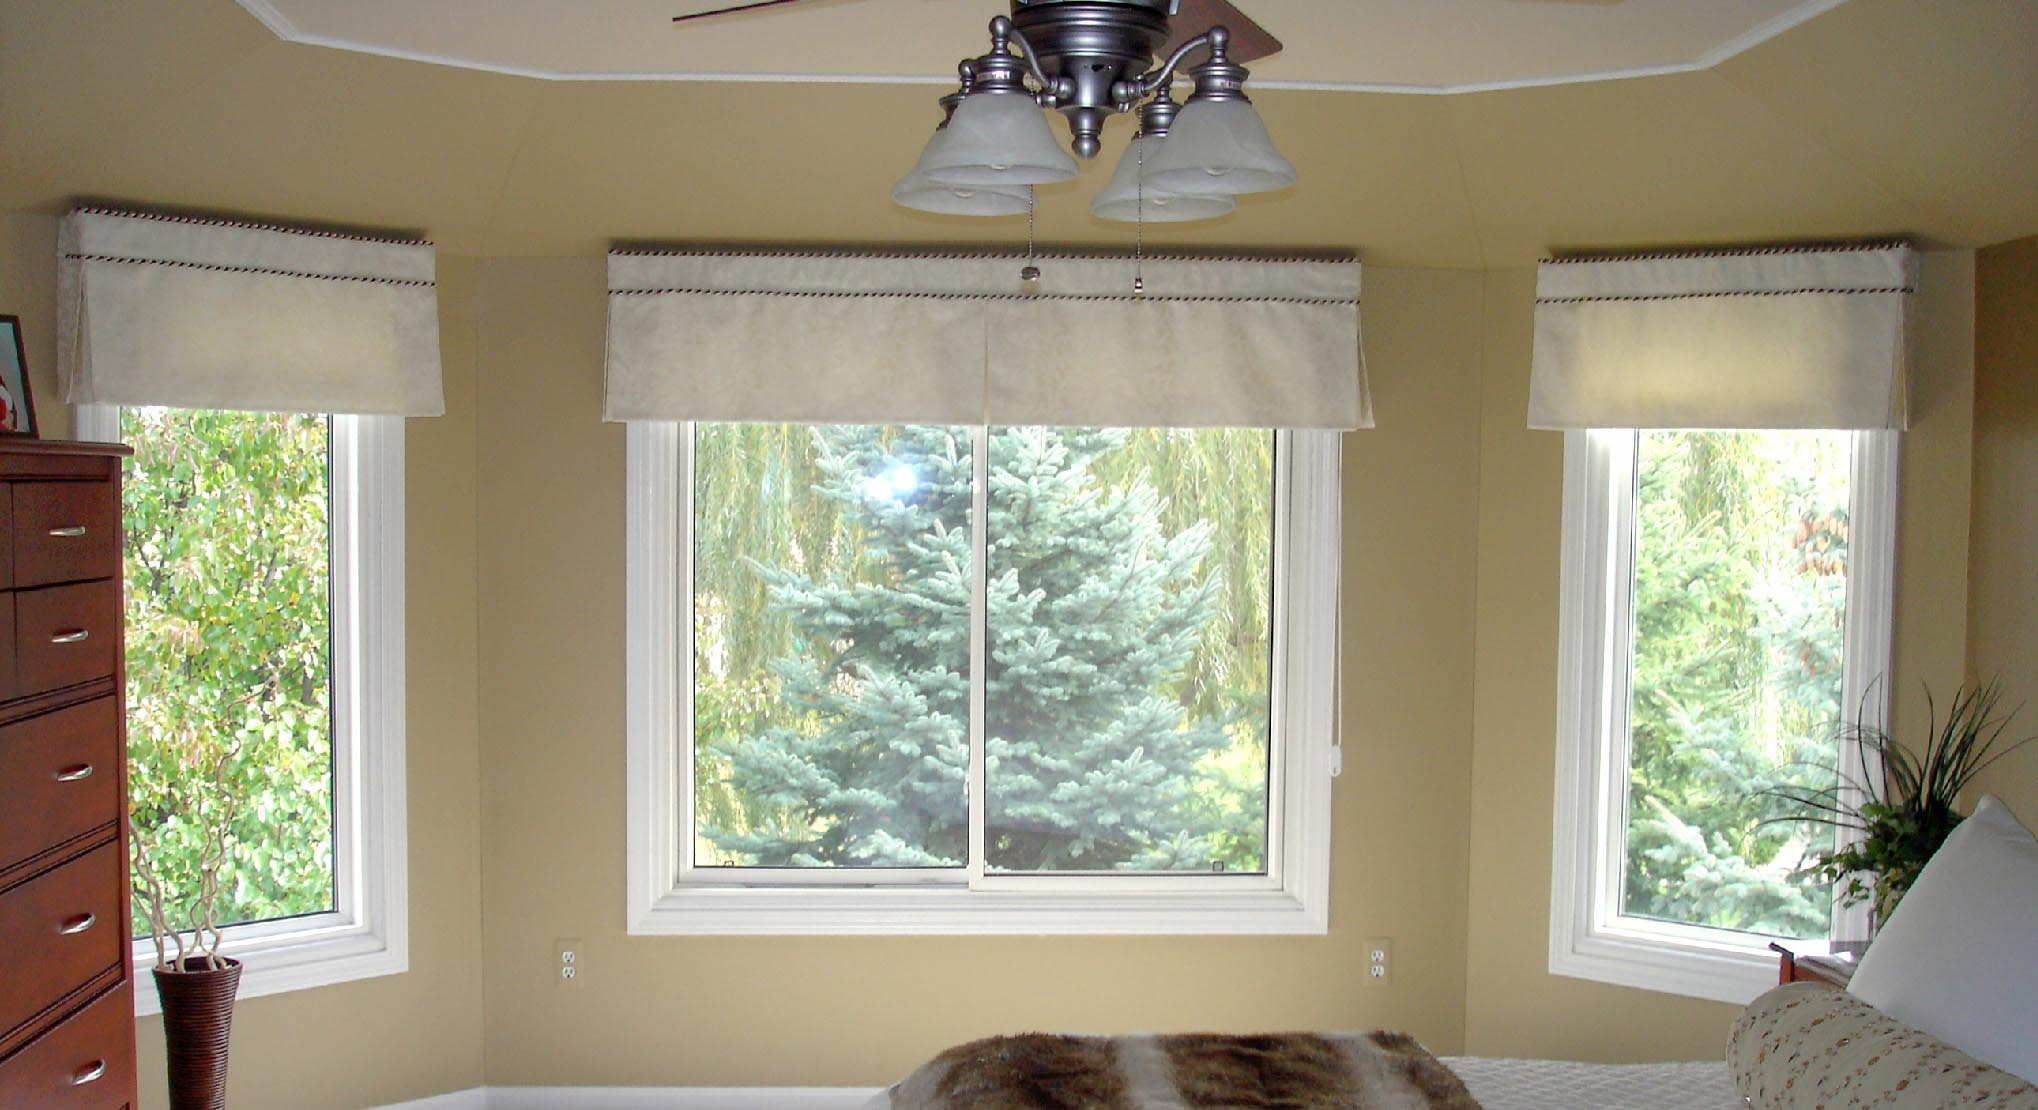 Bedroom valances for windows window treatments design ideas for Window valances for bedroom